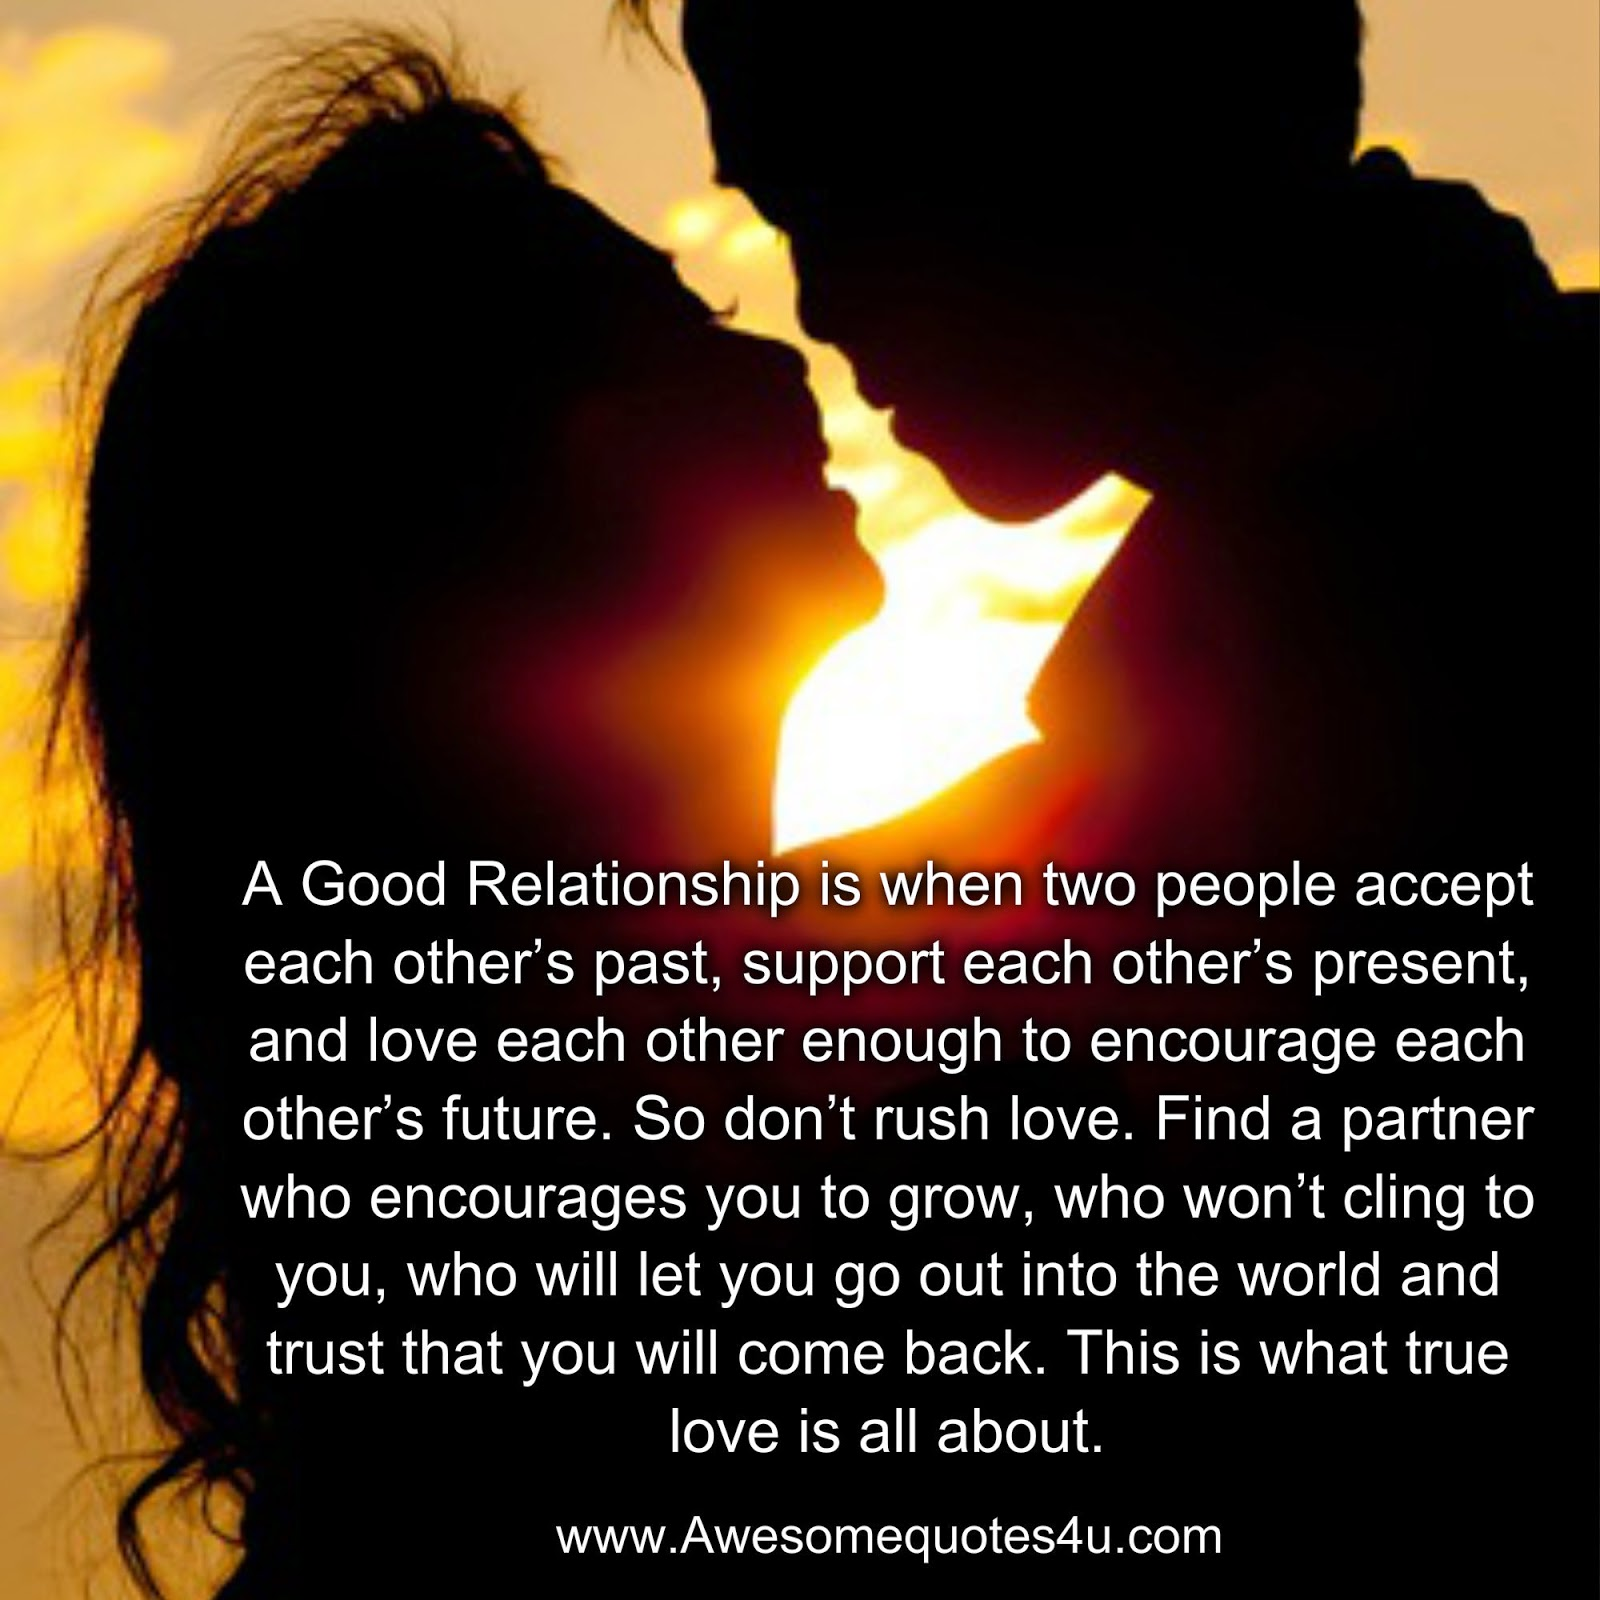 Awesome Quotes: A Good Relationship is when